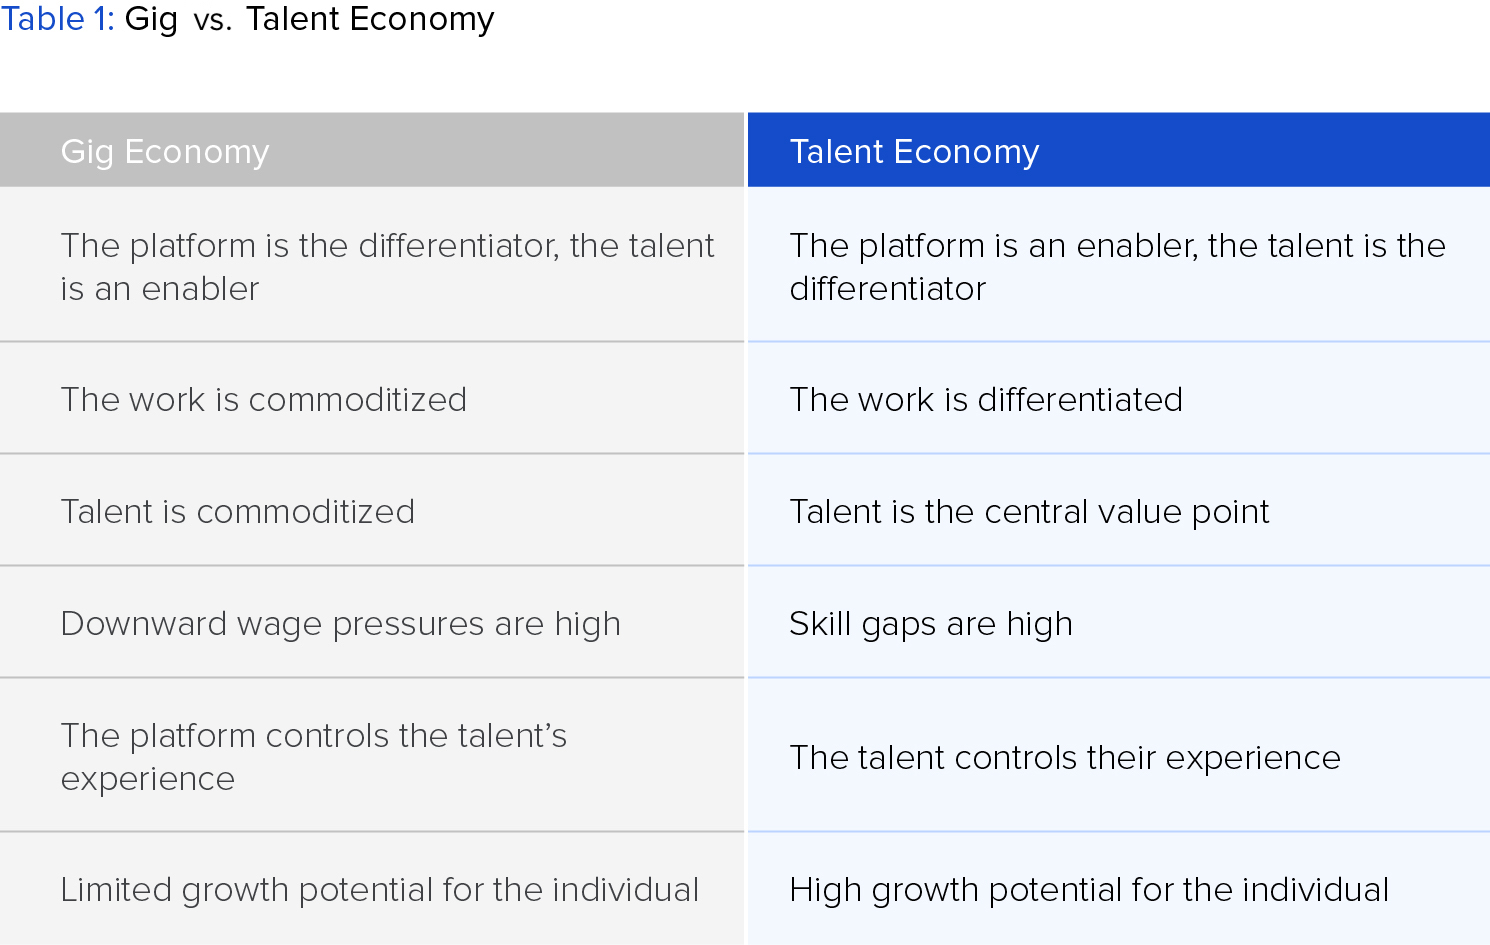 Comparison of the gig vs. talent economy.